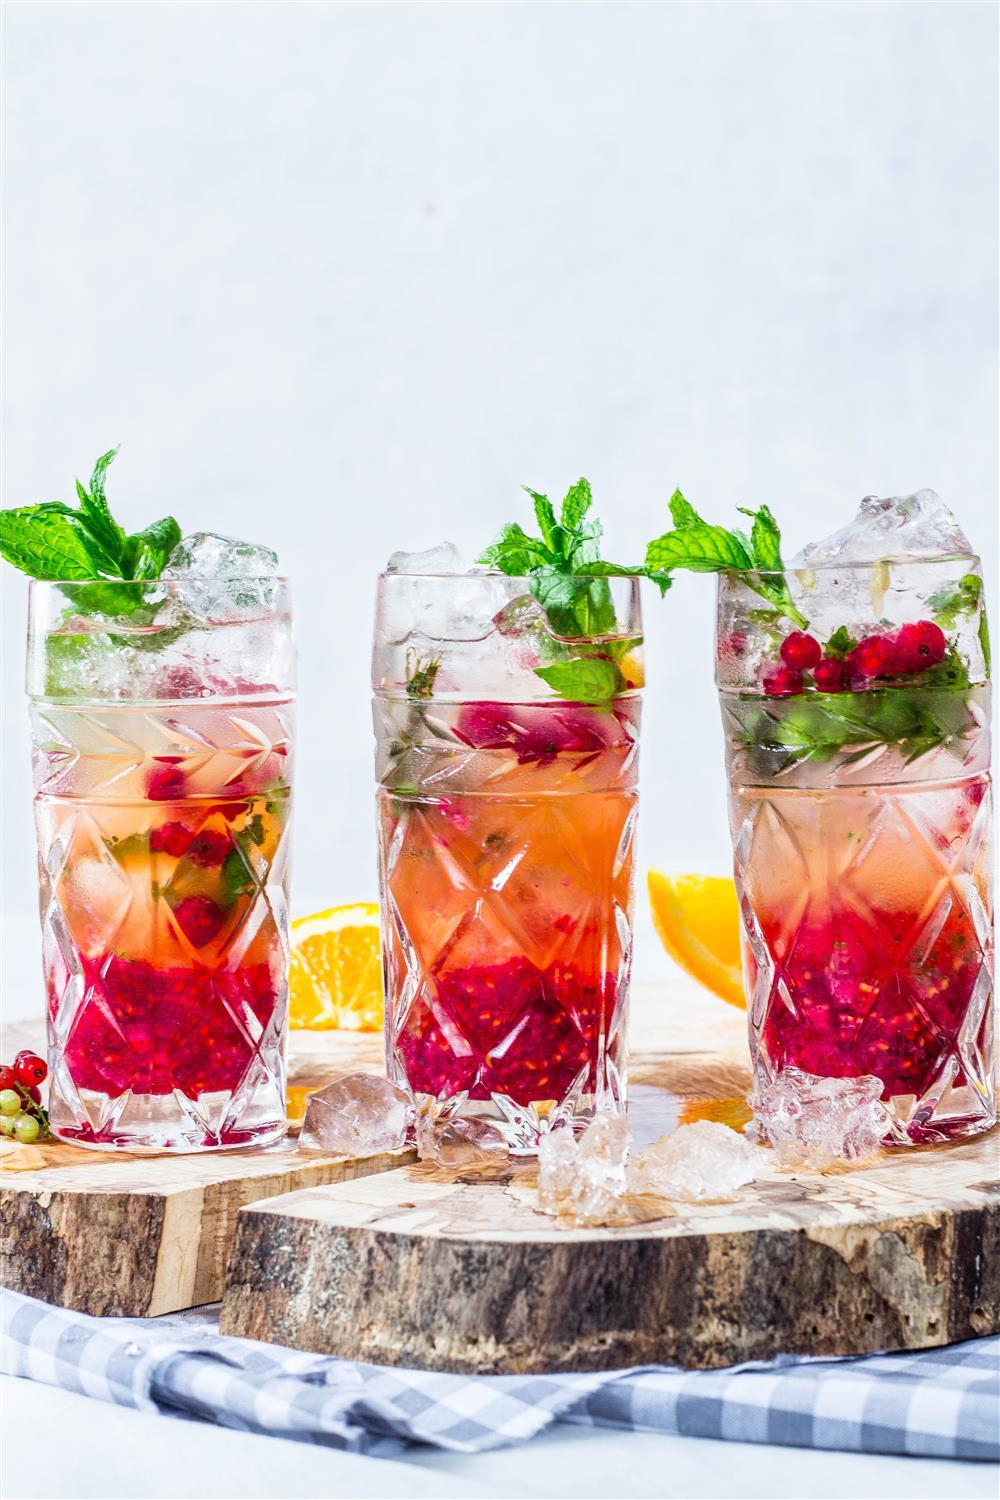 Perfectly refreshnig comfort summer drinks - red currant, orange and mint mojitos!